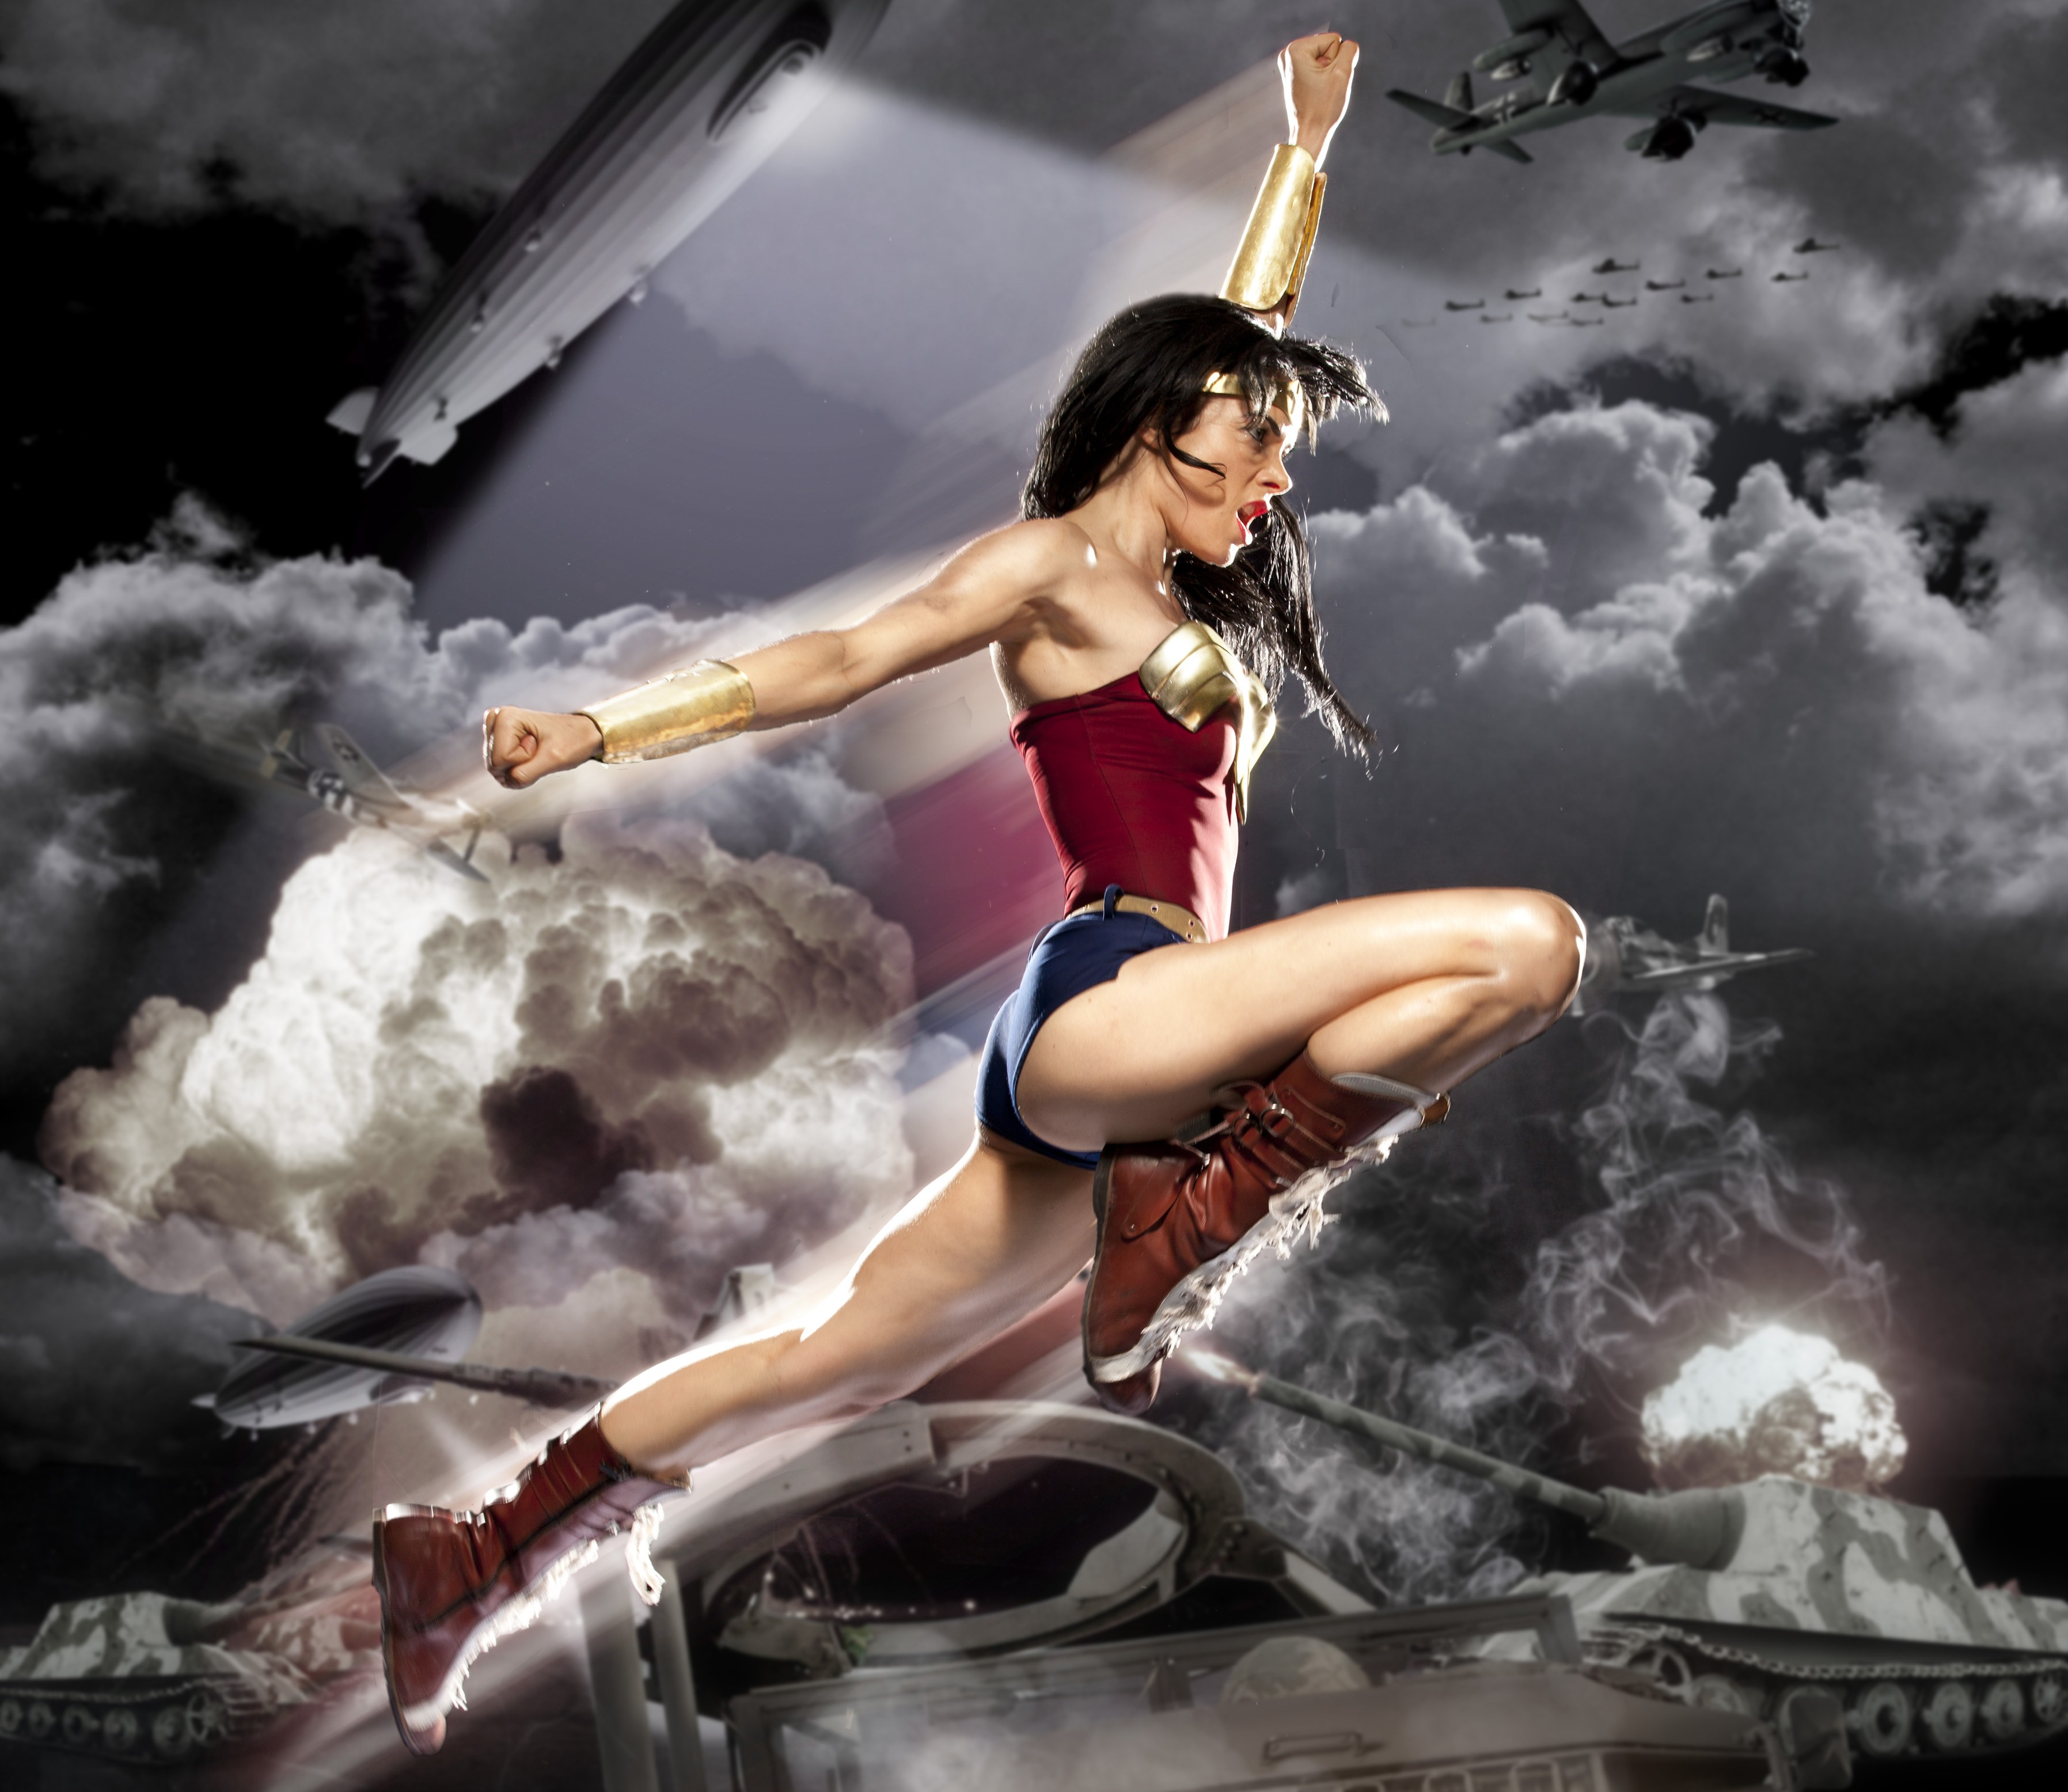 Wonder Woman finally looks like the badass we all have waited for